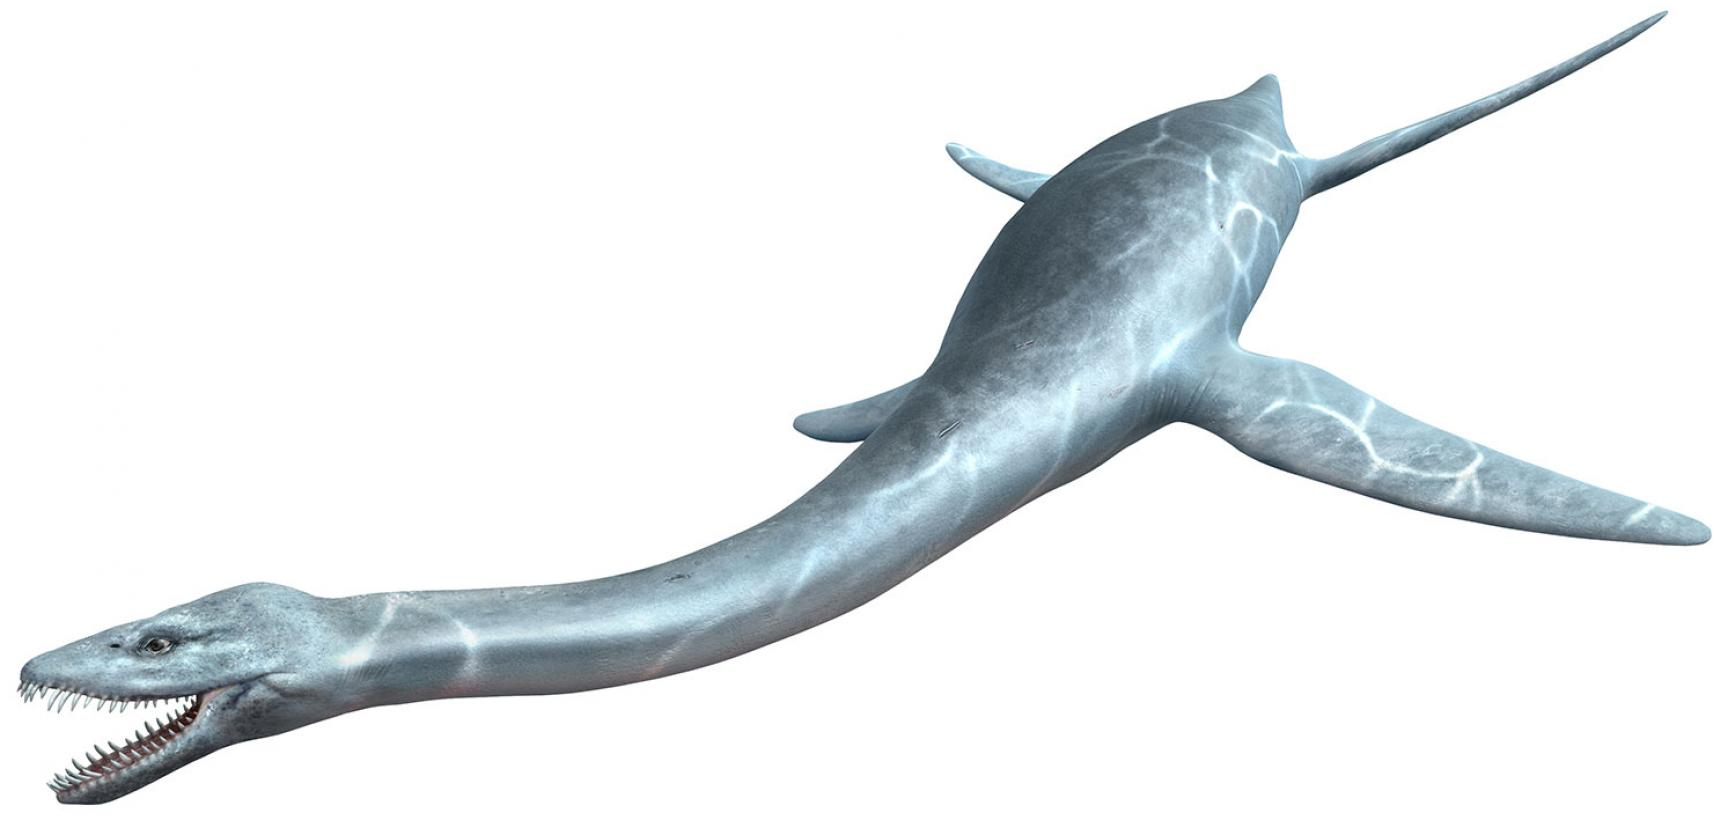 The long-necked plesiosaur on display in the Museum of Natural History in Oxford